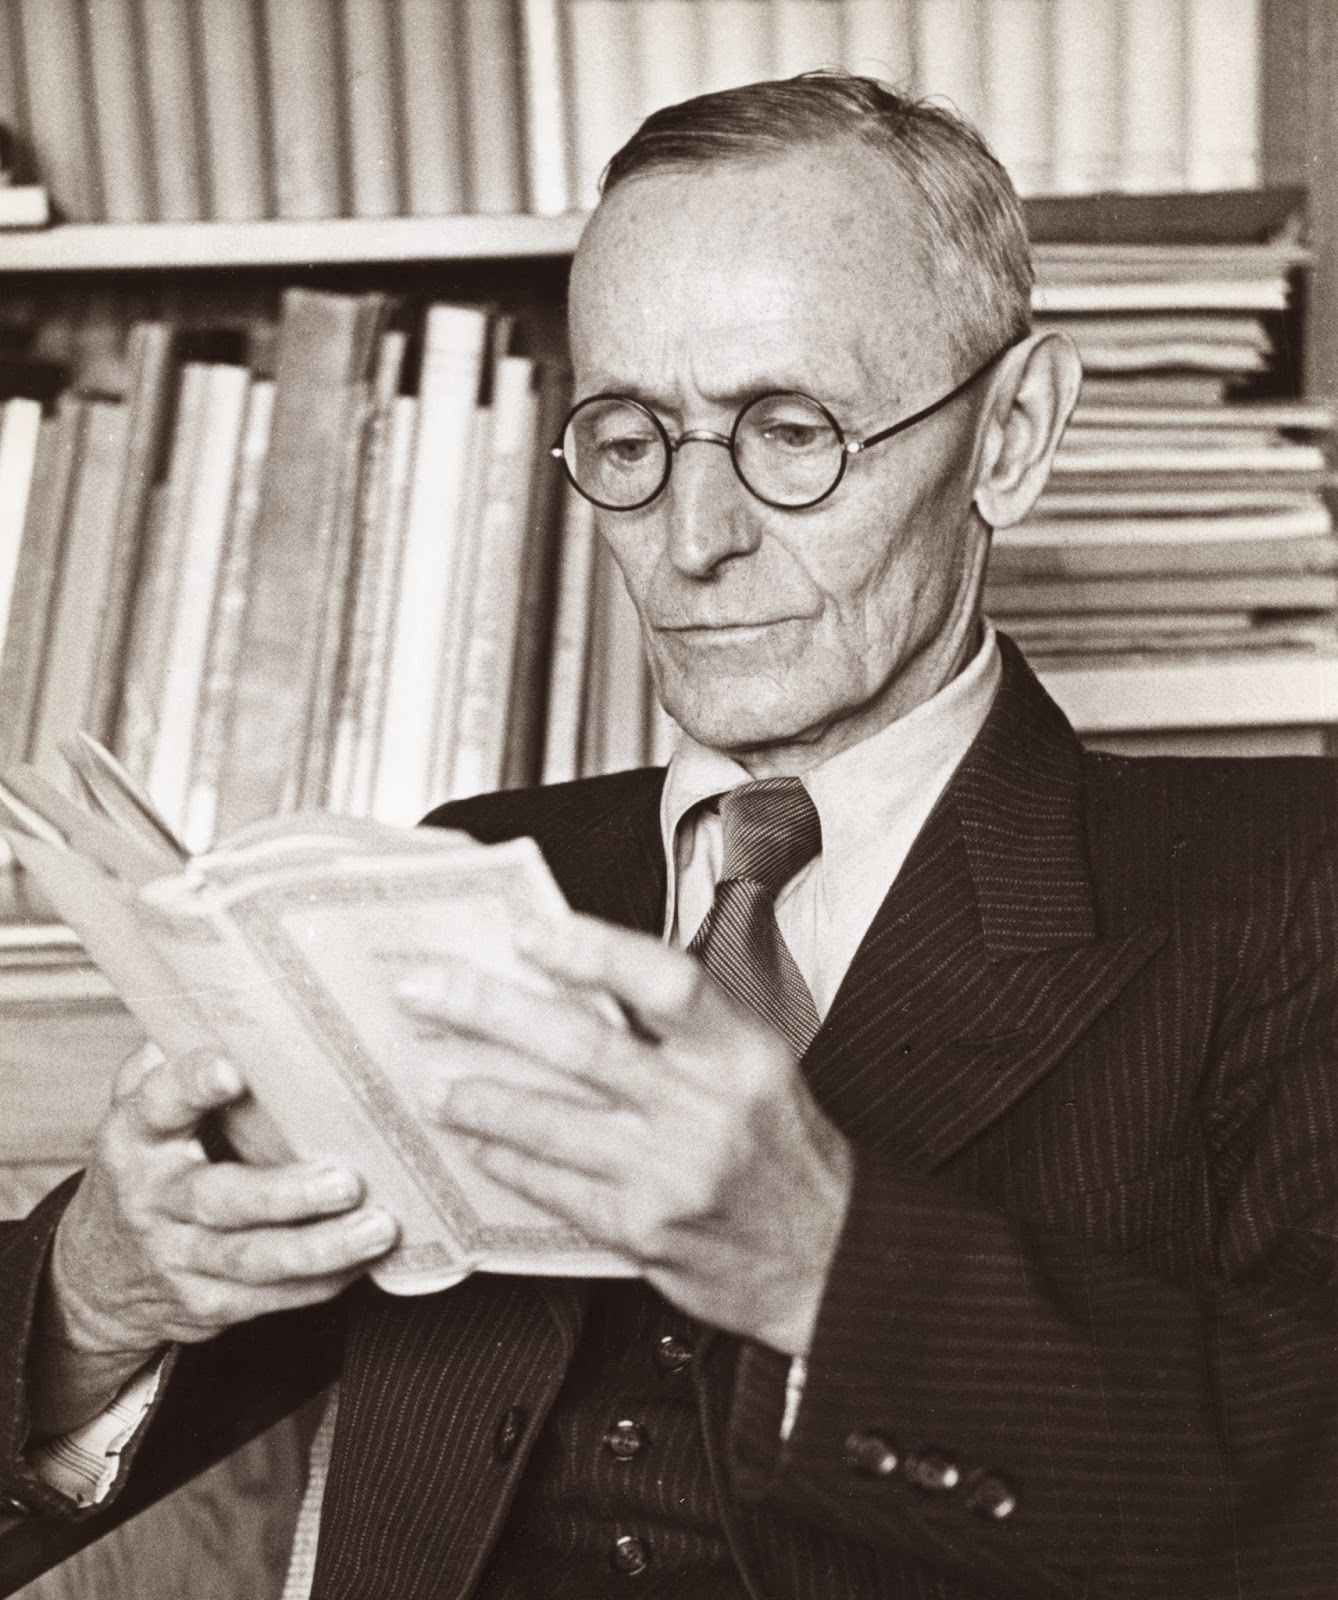 Hermann hesse essay on trees